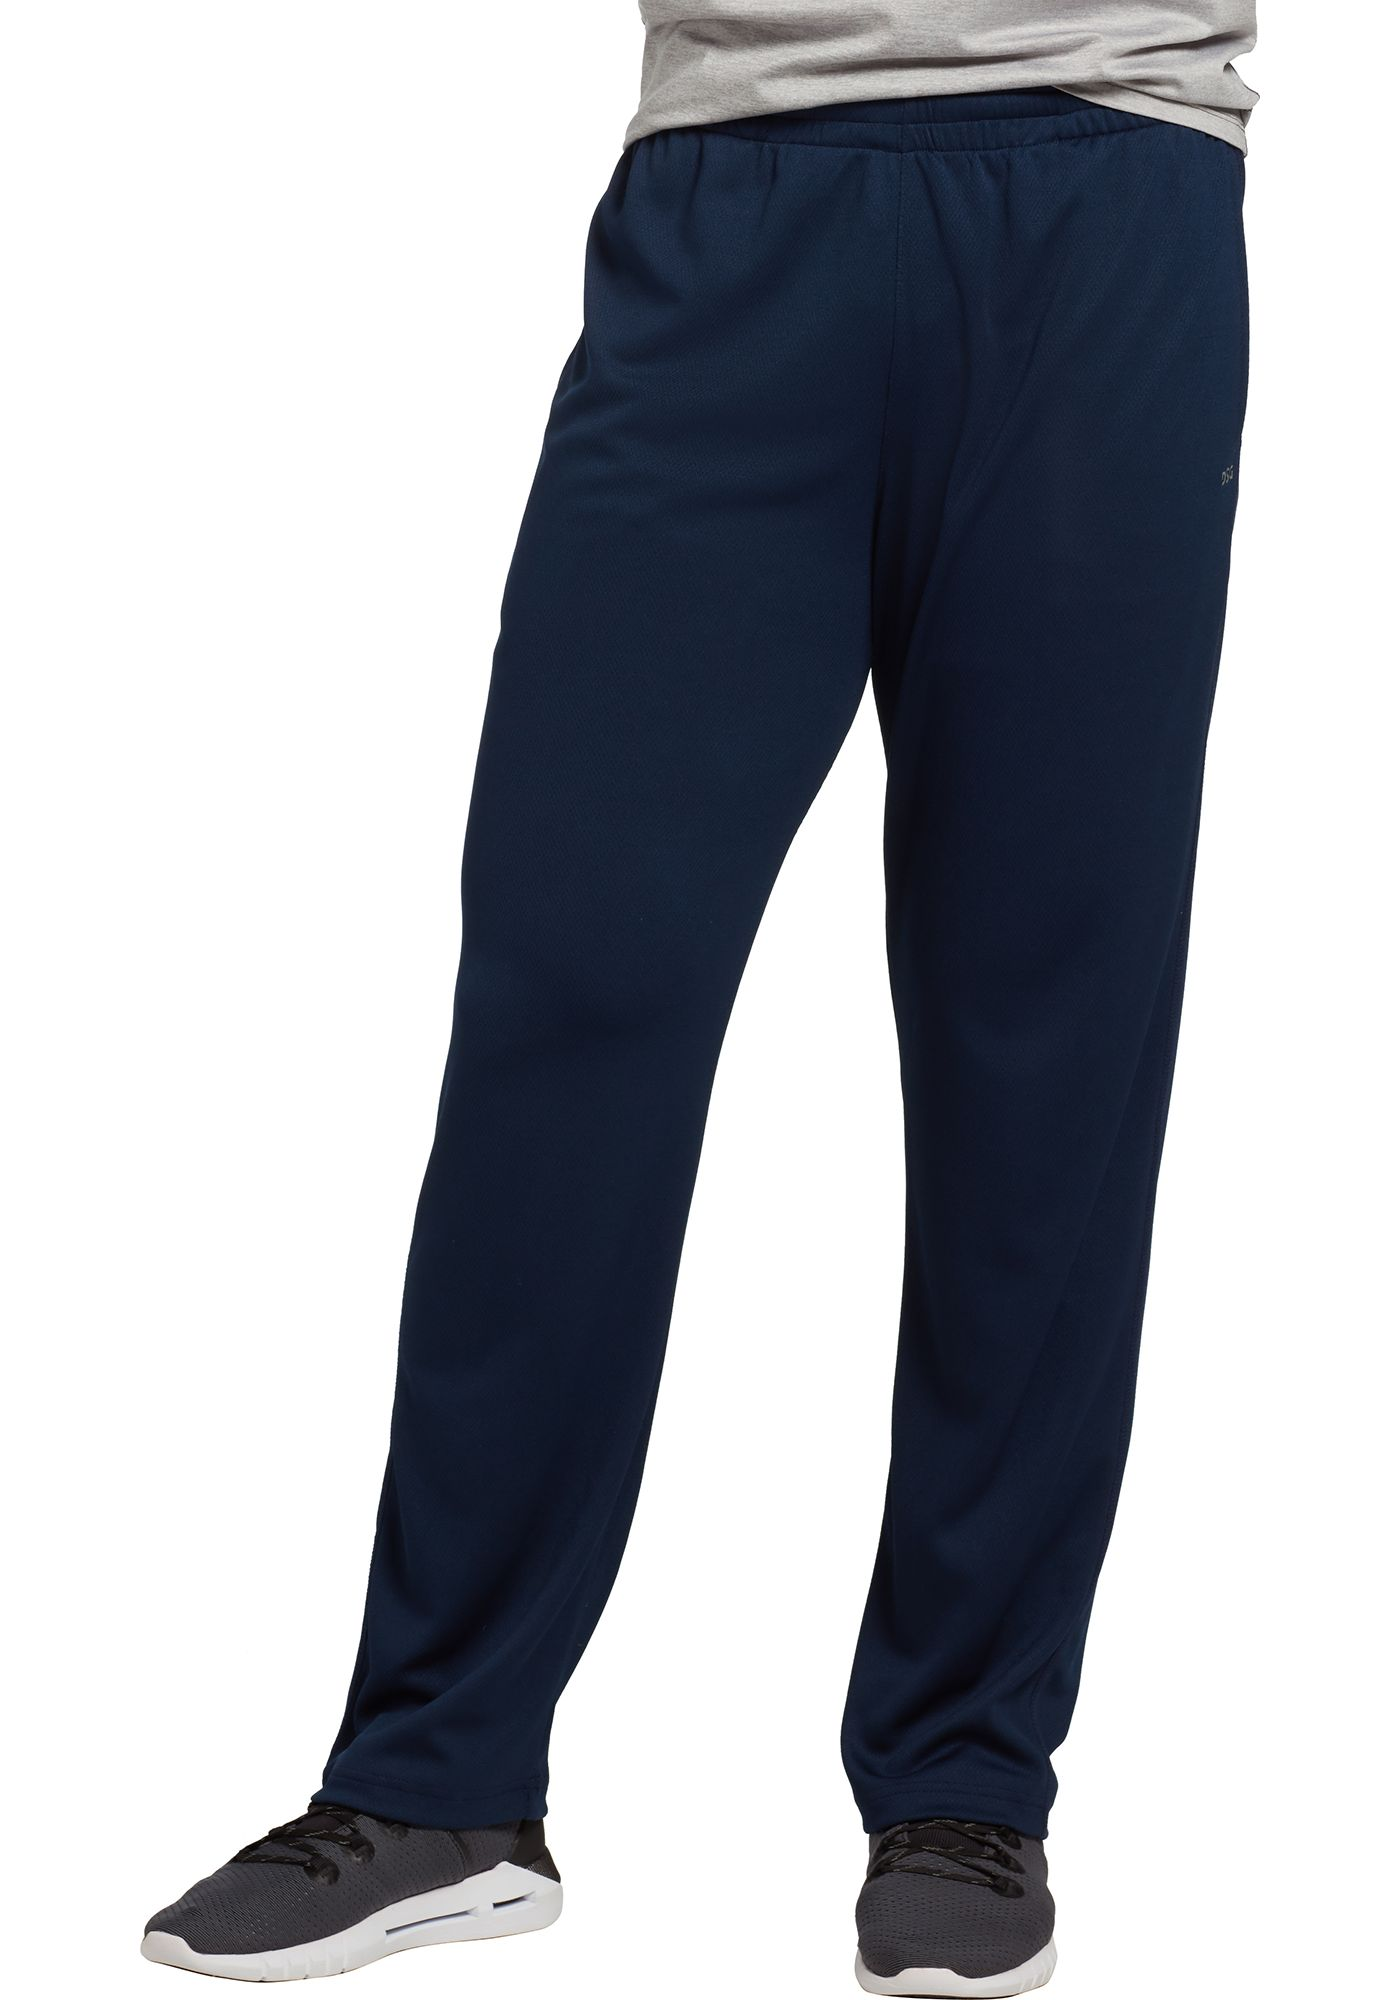 DSG Men's Mesh Training Pants (Regular and Big & Tall)